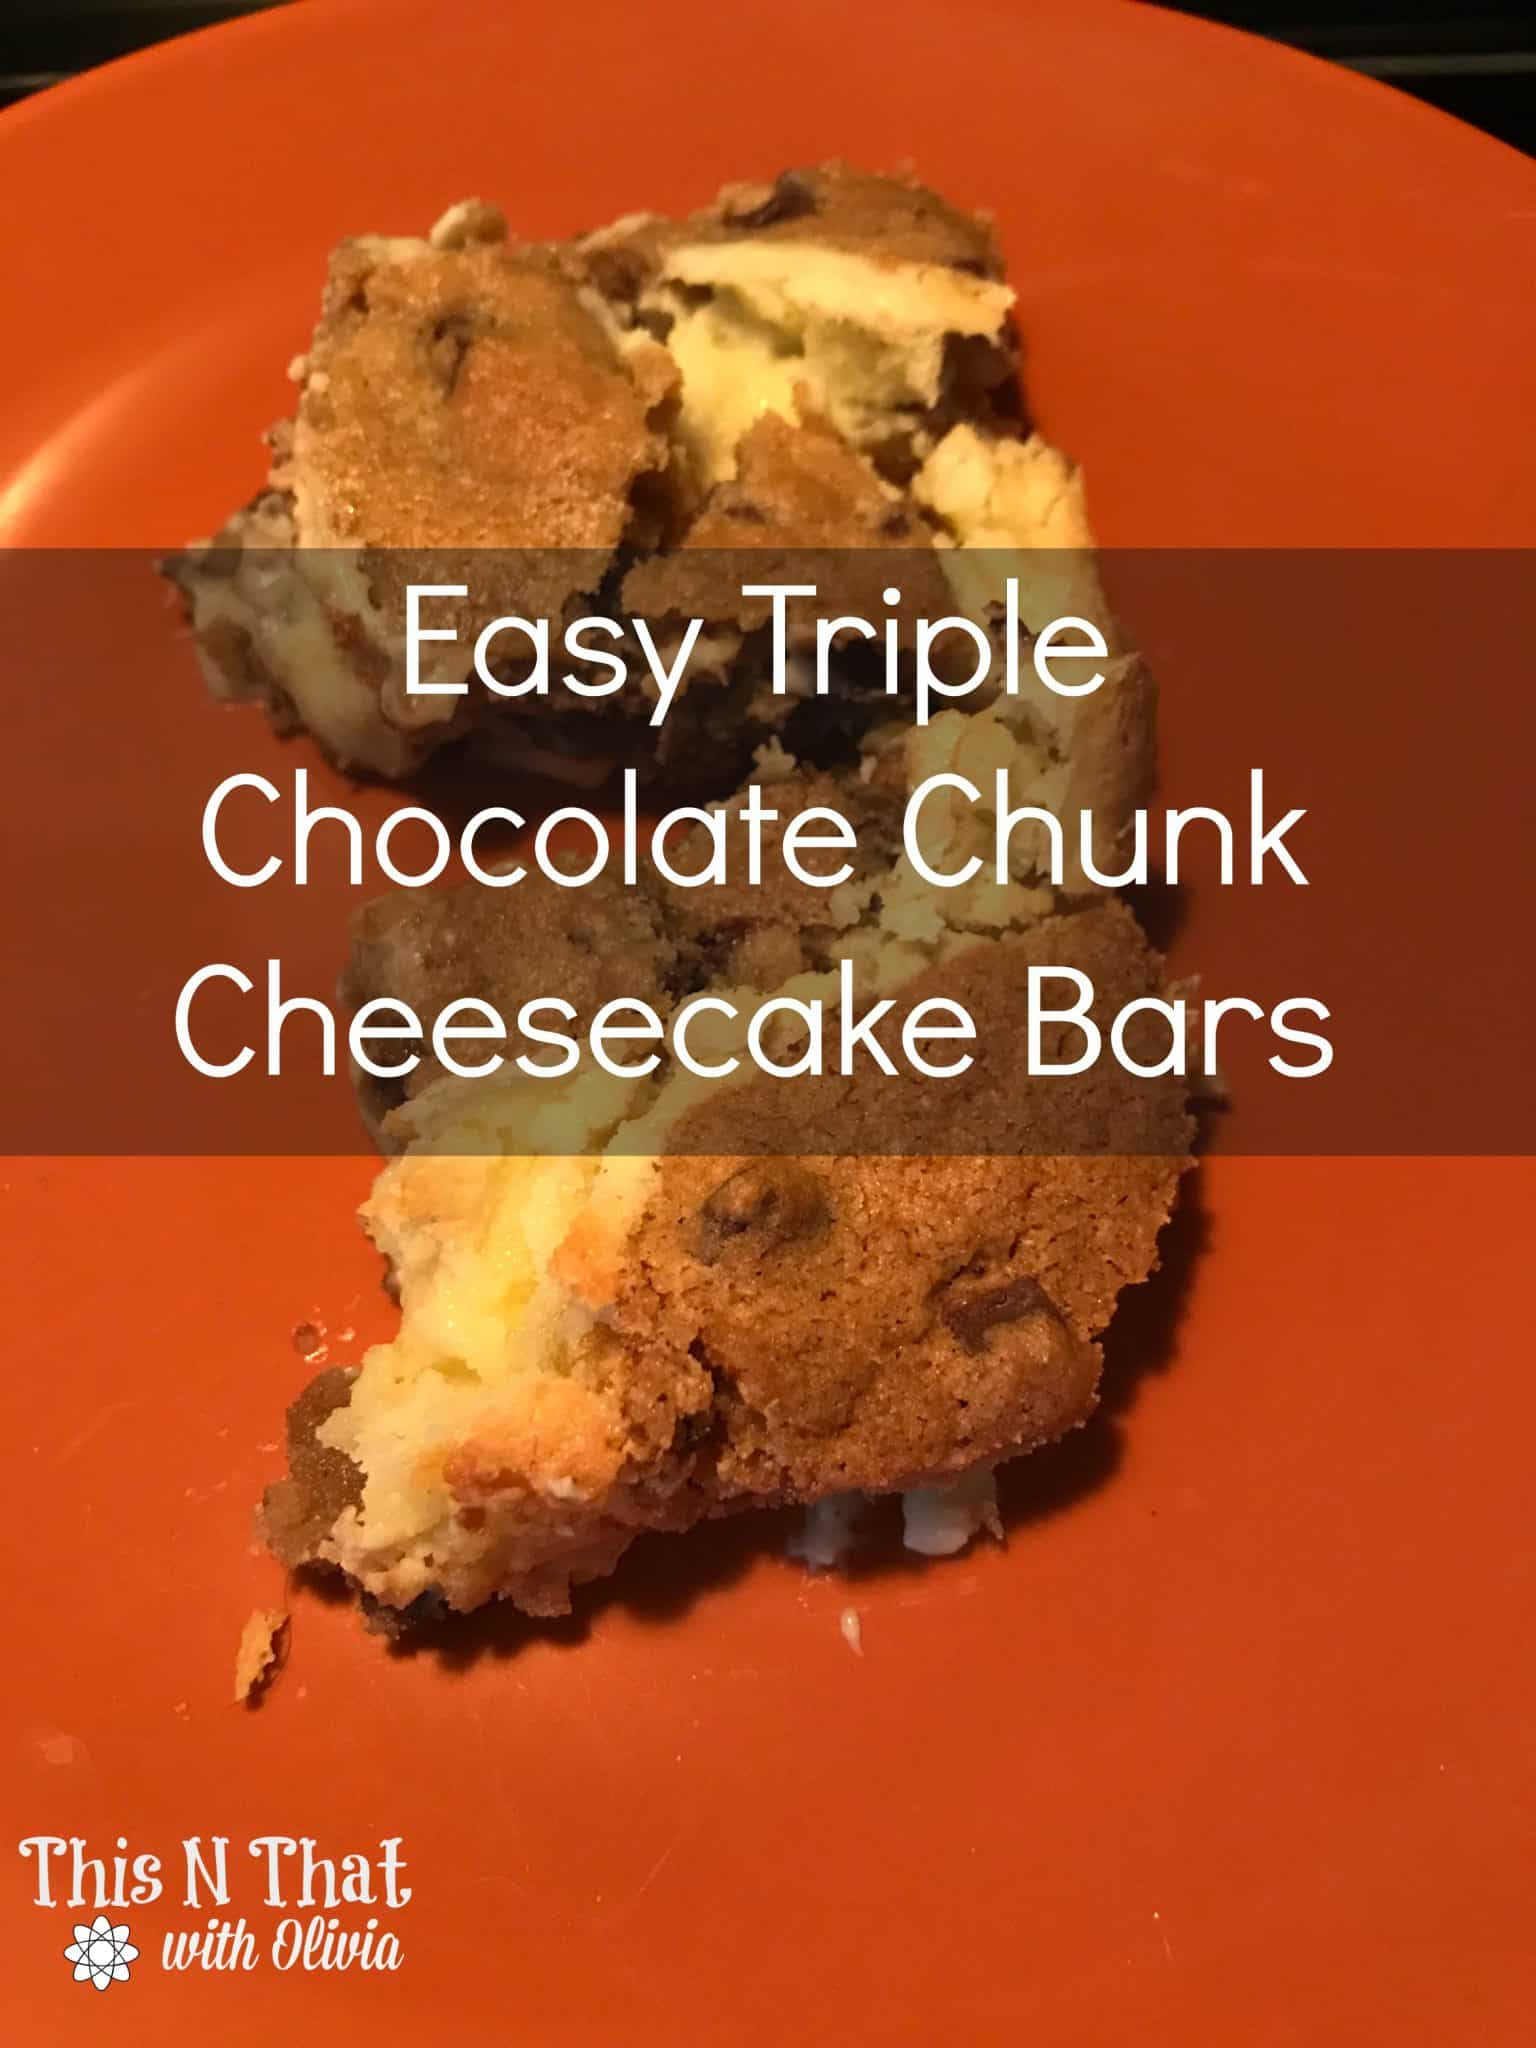 Easy Triple Chocolate Chunk Cheesecake Bars @Krusteaz